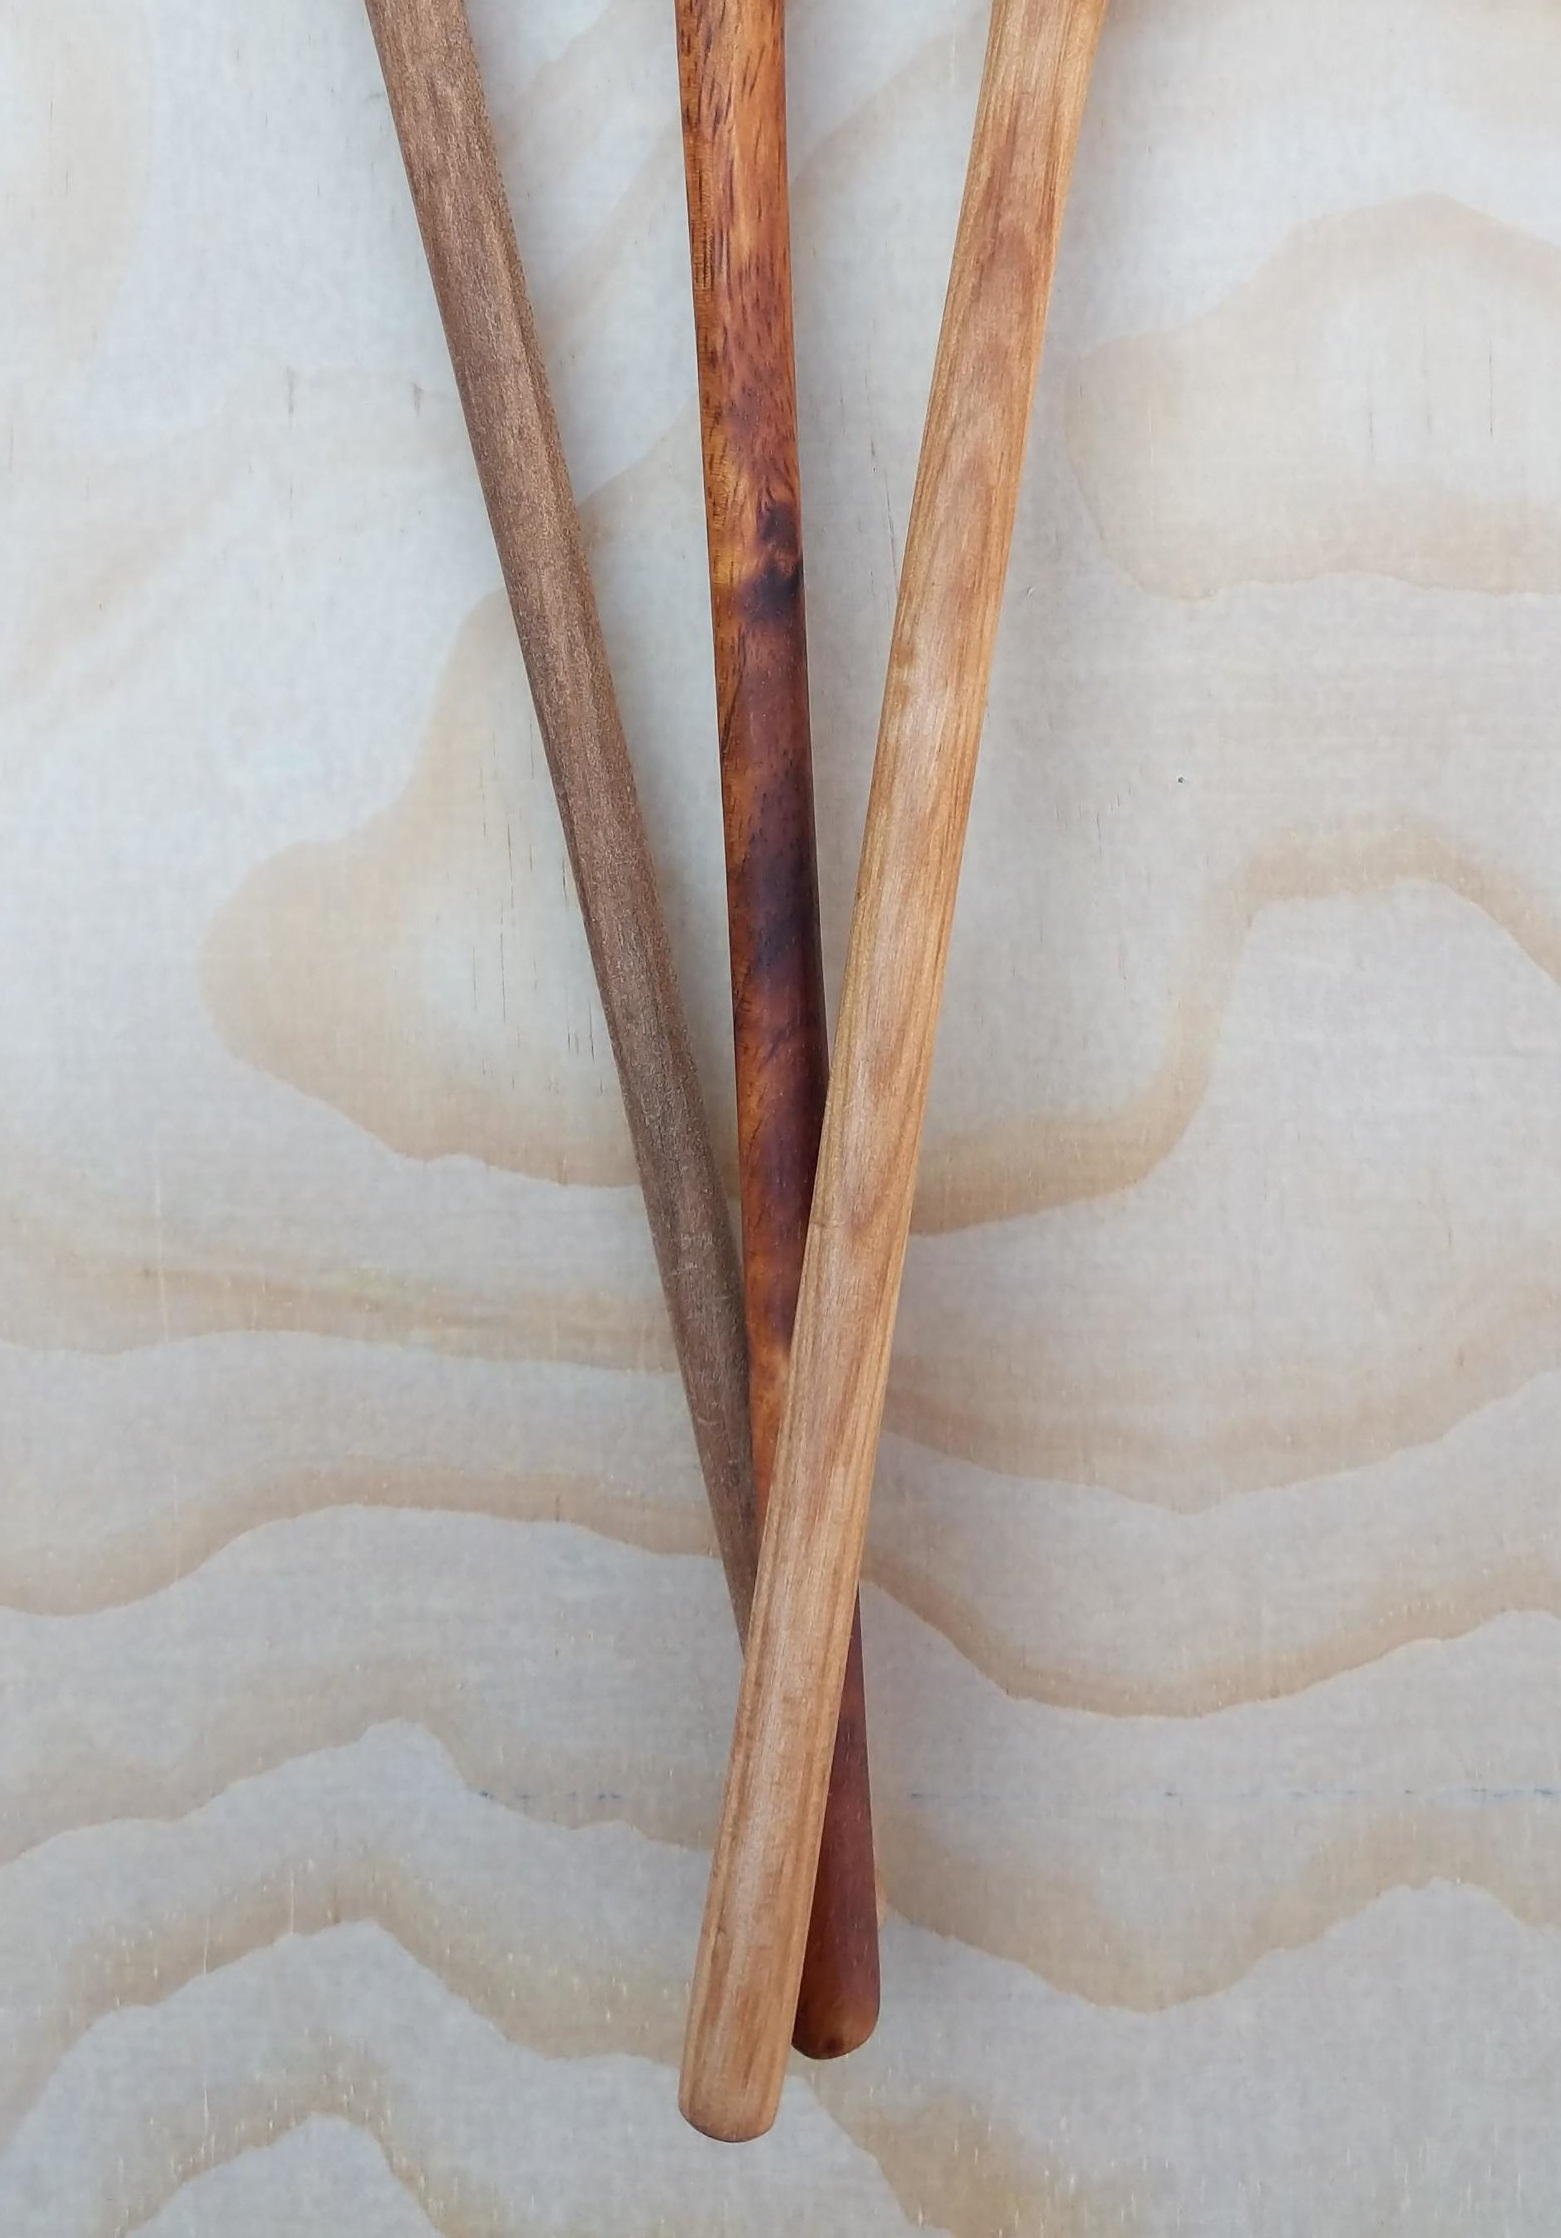 The straight, slender handles of the apothecary spoons.